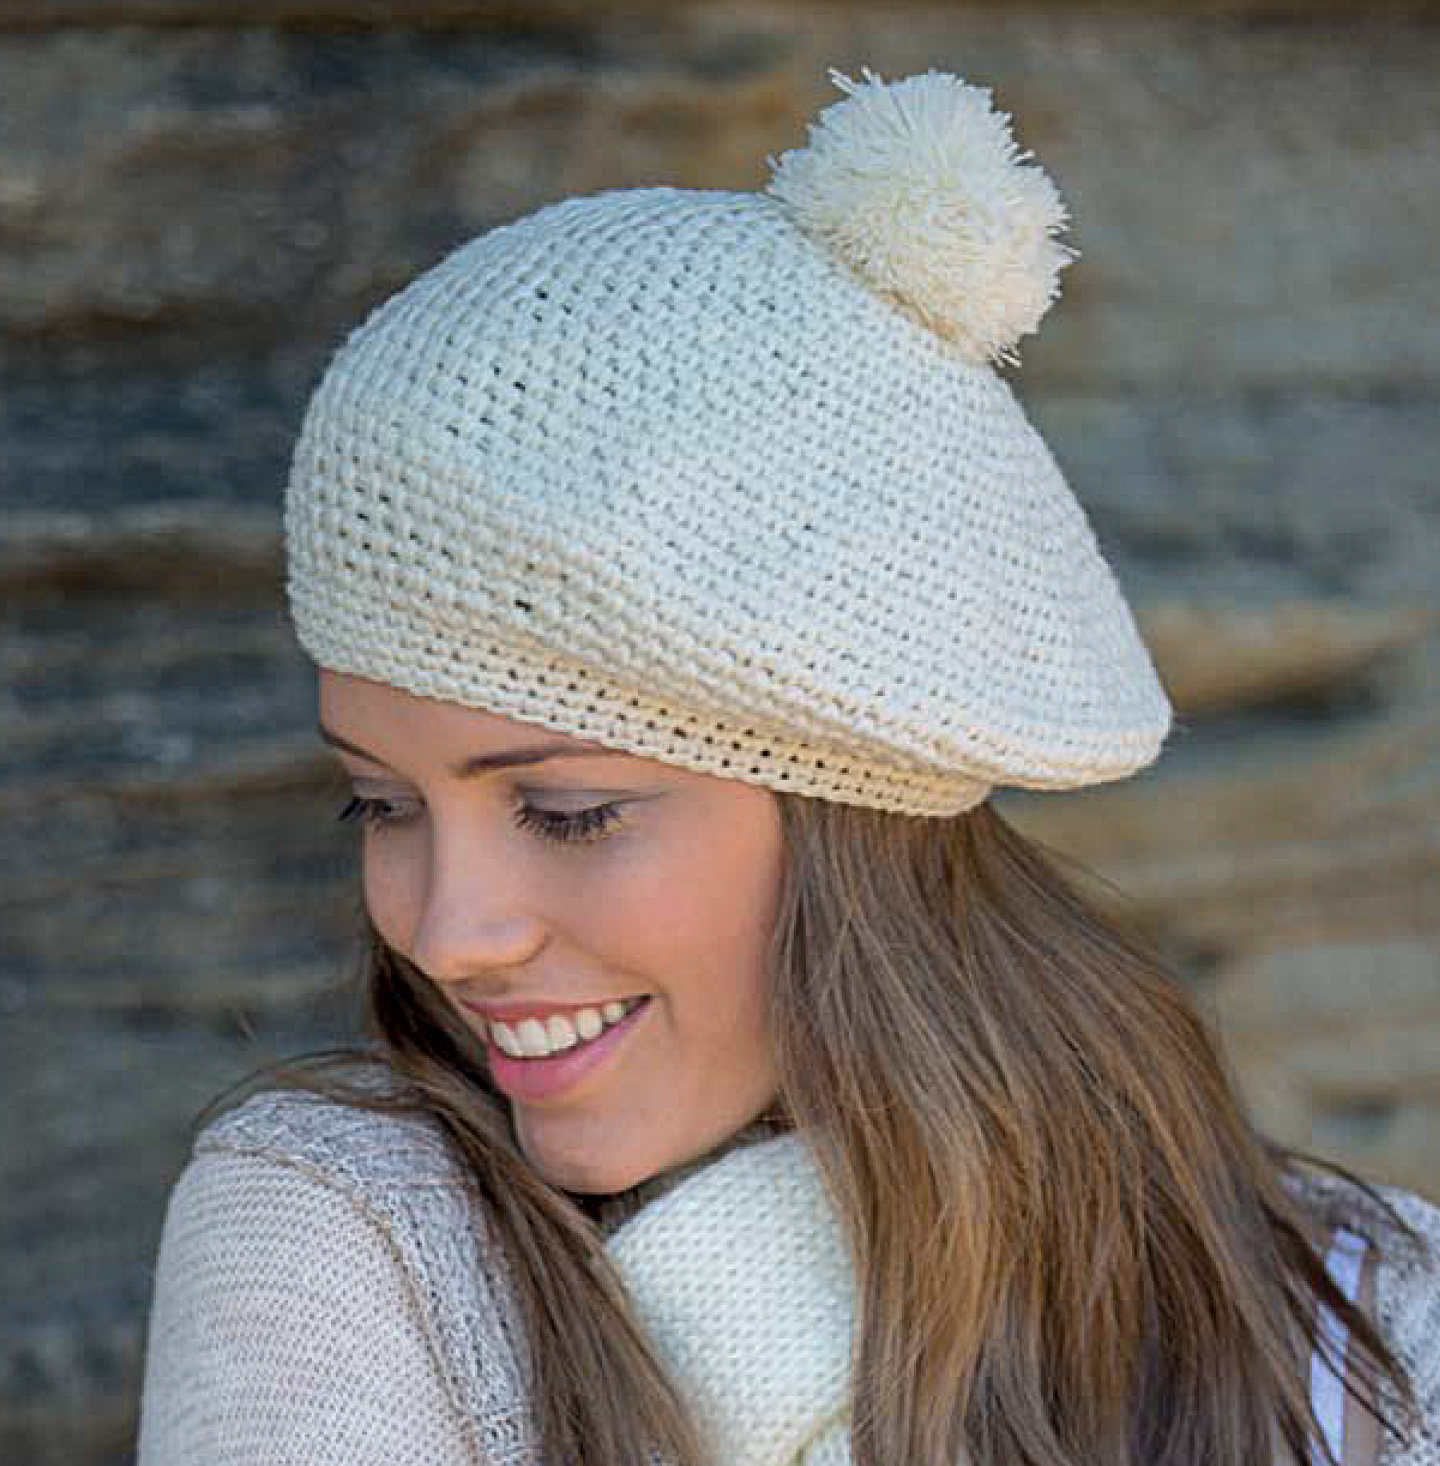 RL292 parisian crocheted beret. Loose crochet design with decorative pom pom. A fun and quirky addition to our winter range.